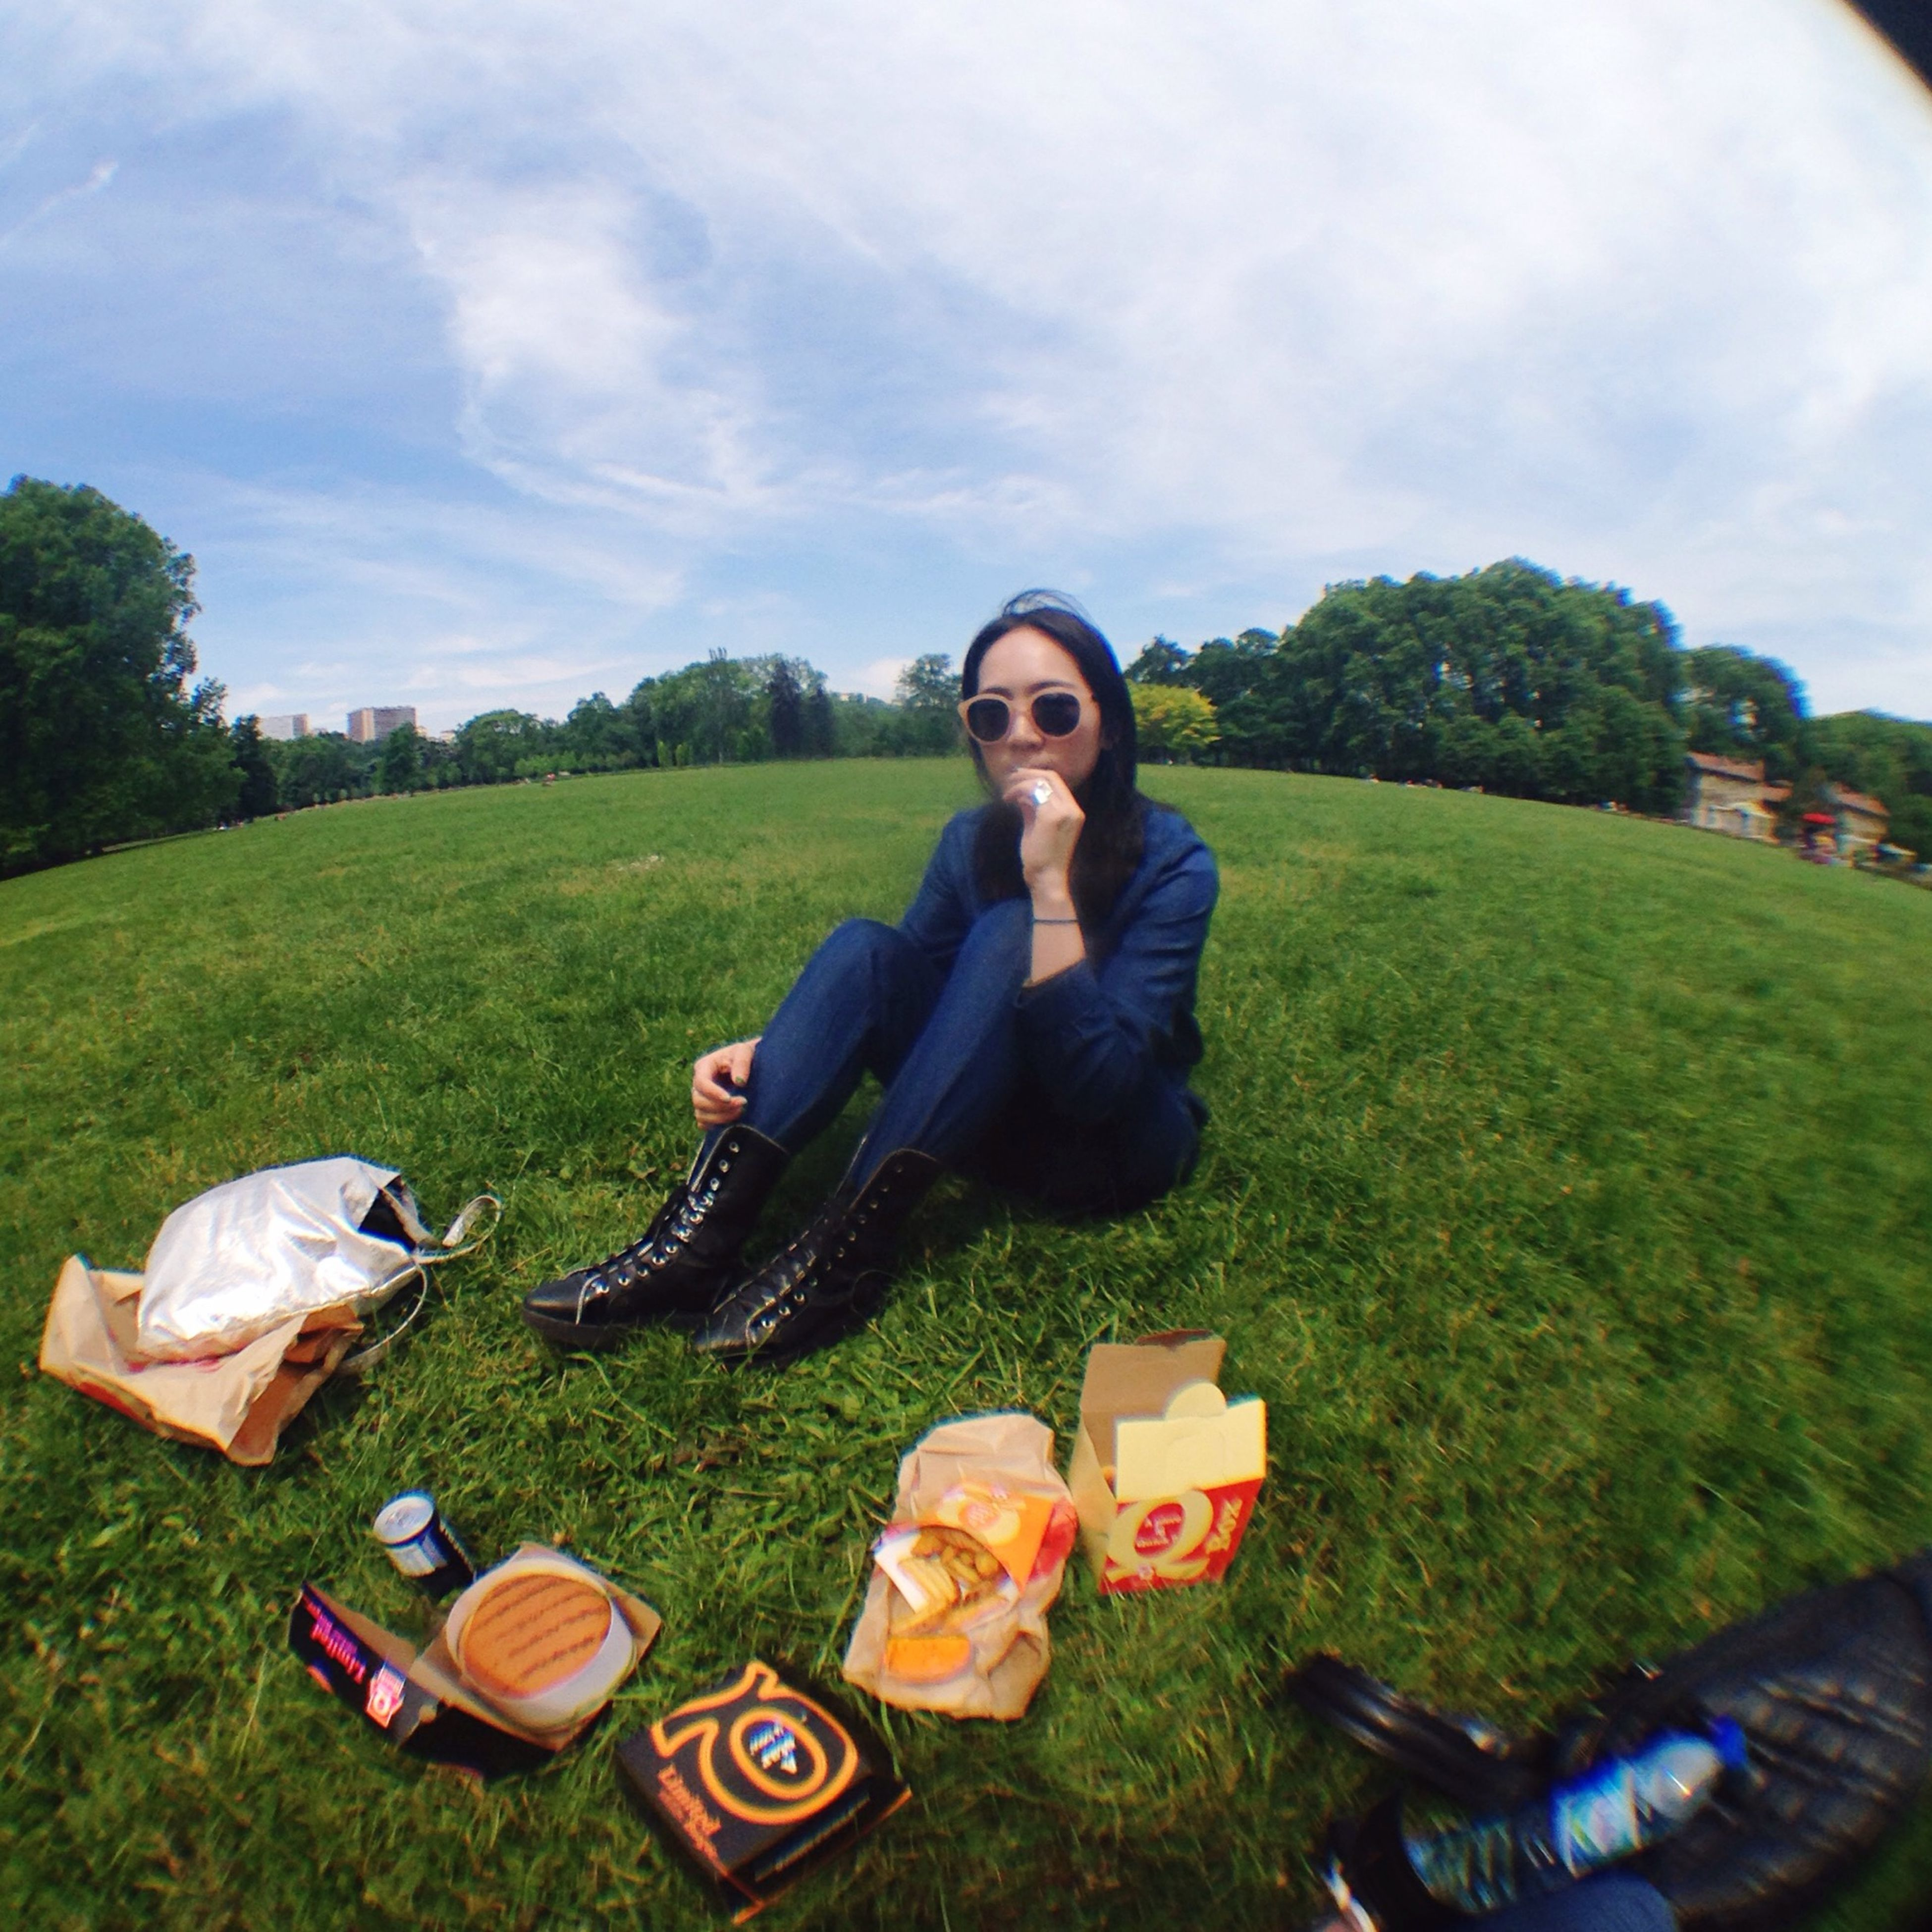 young adult, lifestyles, person, looking at camera, leisure activity, casual clothing, portrait, young women, smiling, grass, sitting, front view, happiness, tree, field, sunglasses, waist up